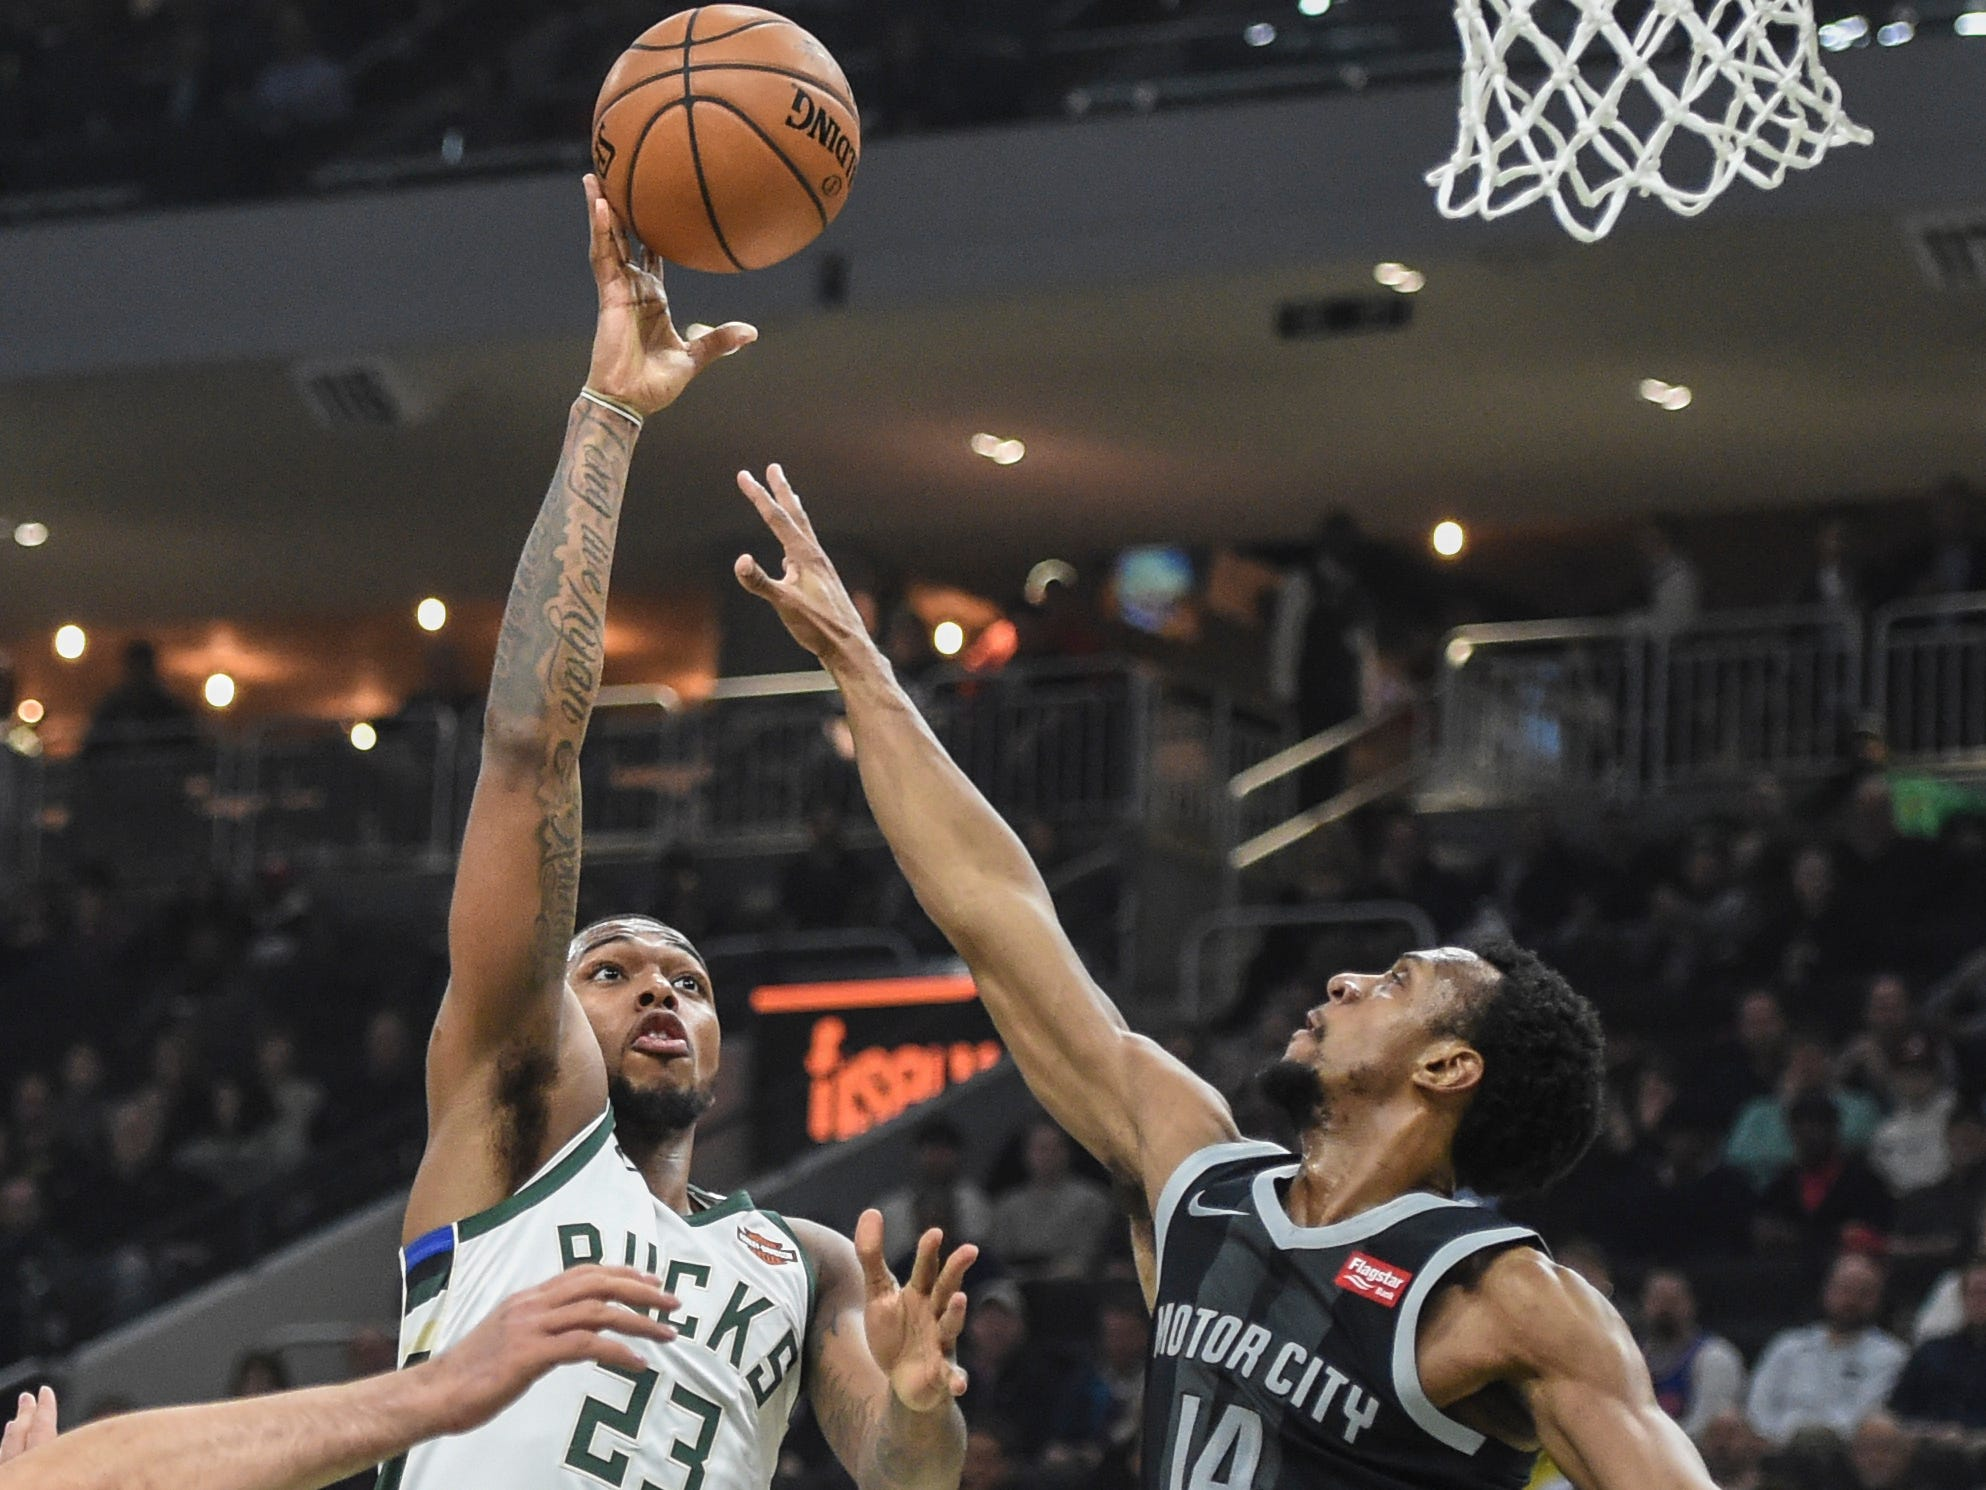 Sterling Brown of the Bucks, going up for a shot against the Pistons' Ish Smith, saw extended playing time on Wednesday with the absence of Khris Middleton and finished with 11 points in 19 minutes.